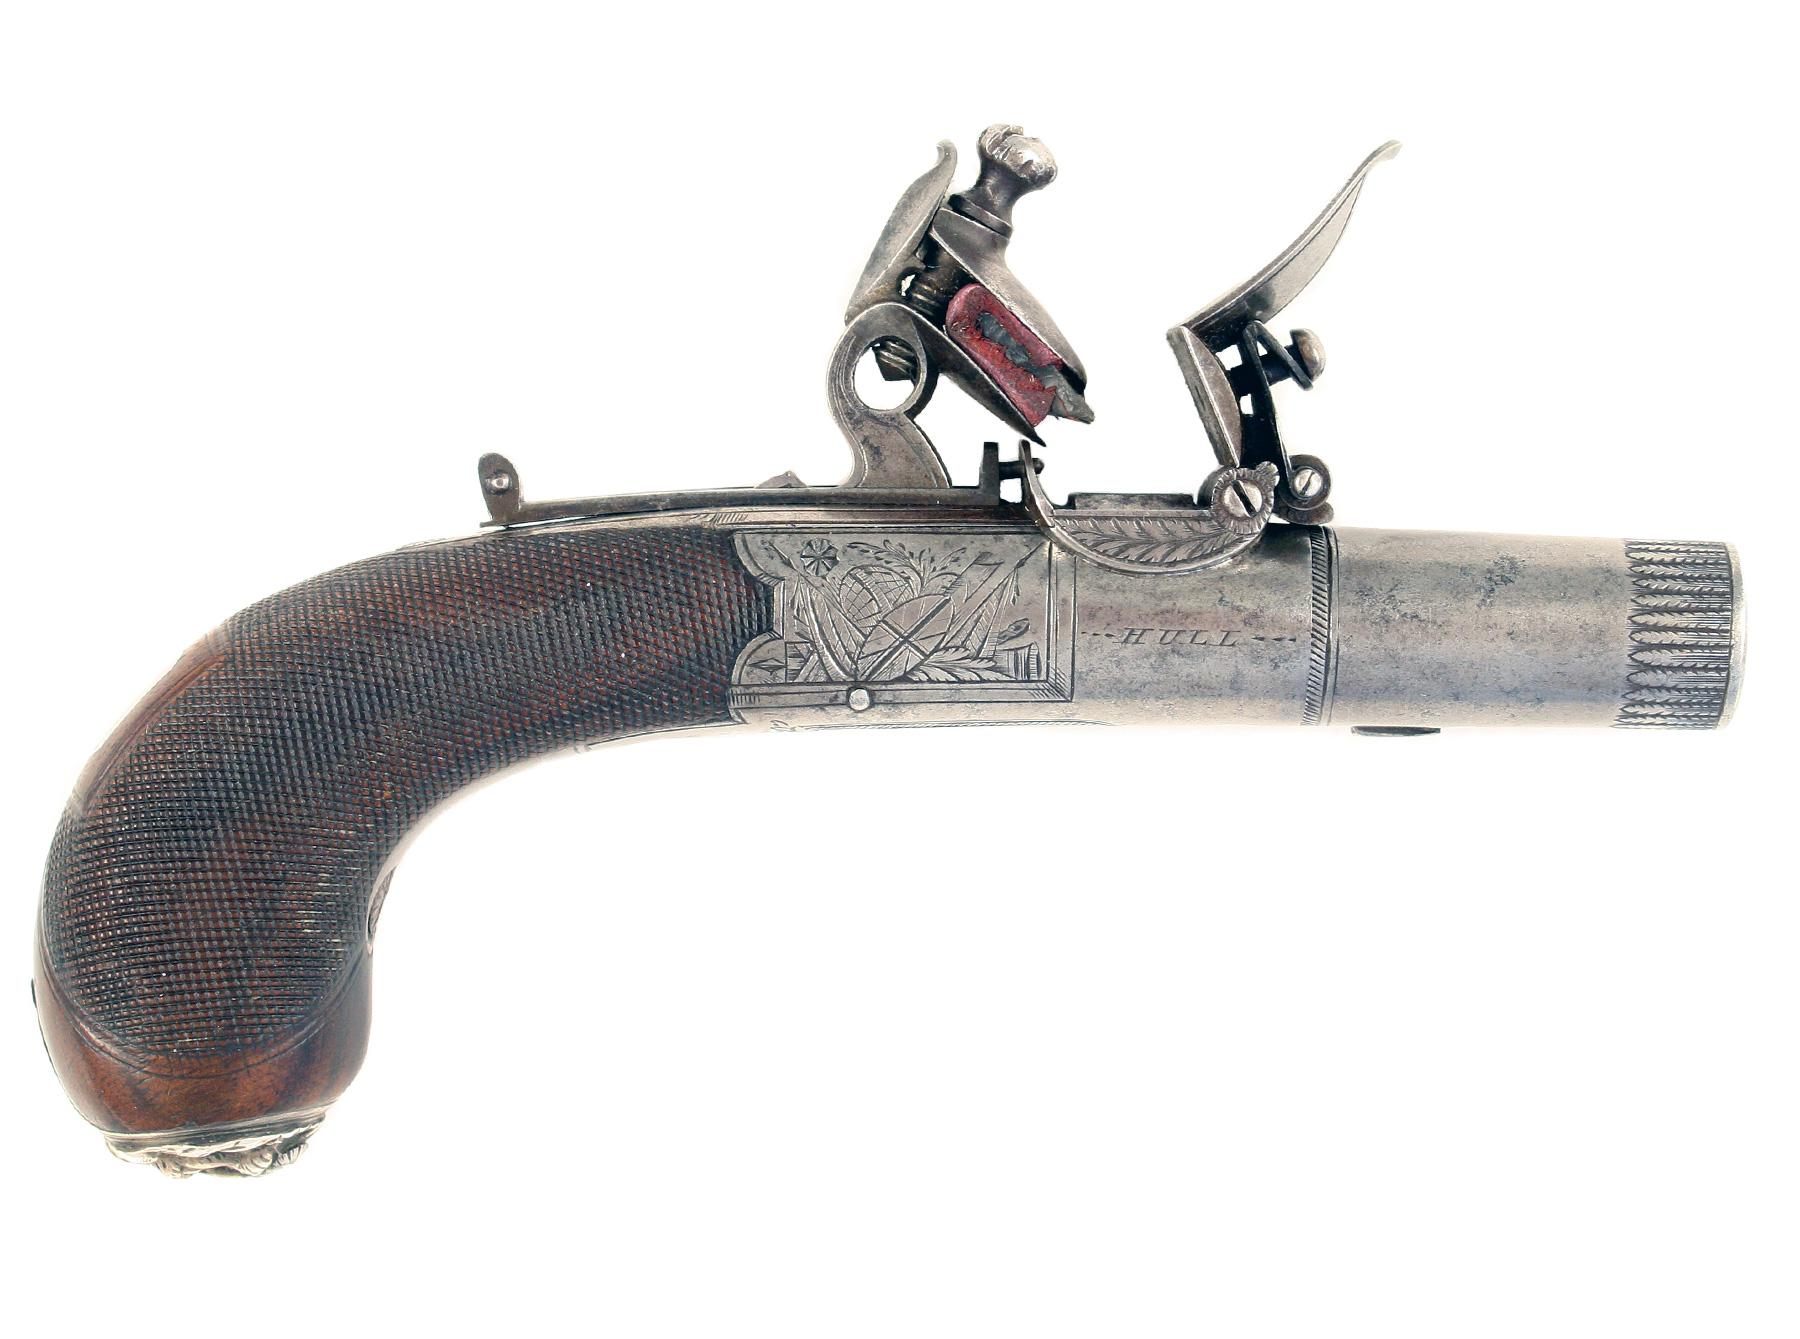 A Fine Flintlock Pocket Pistol by Wallis of Hull